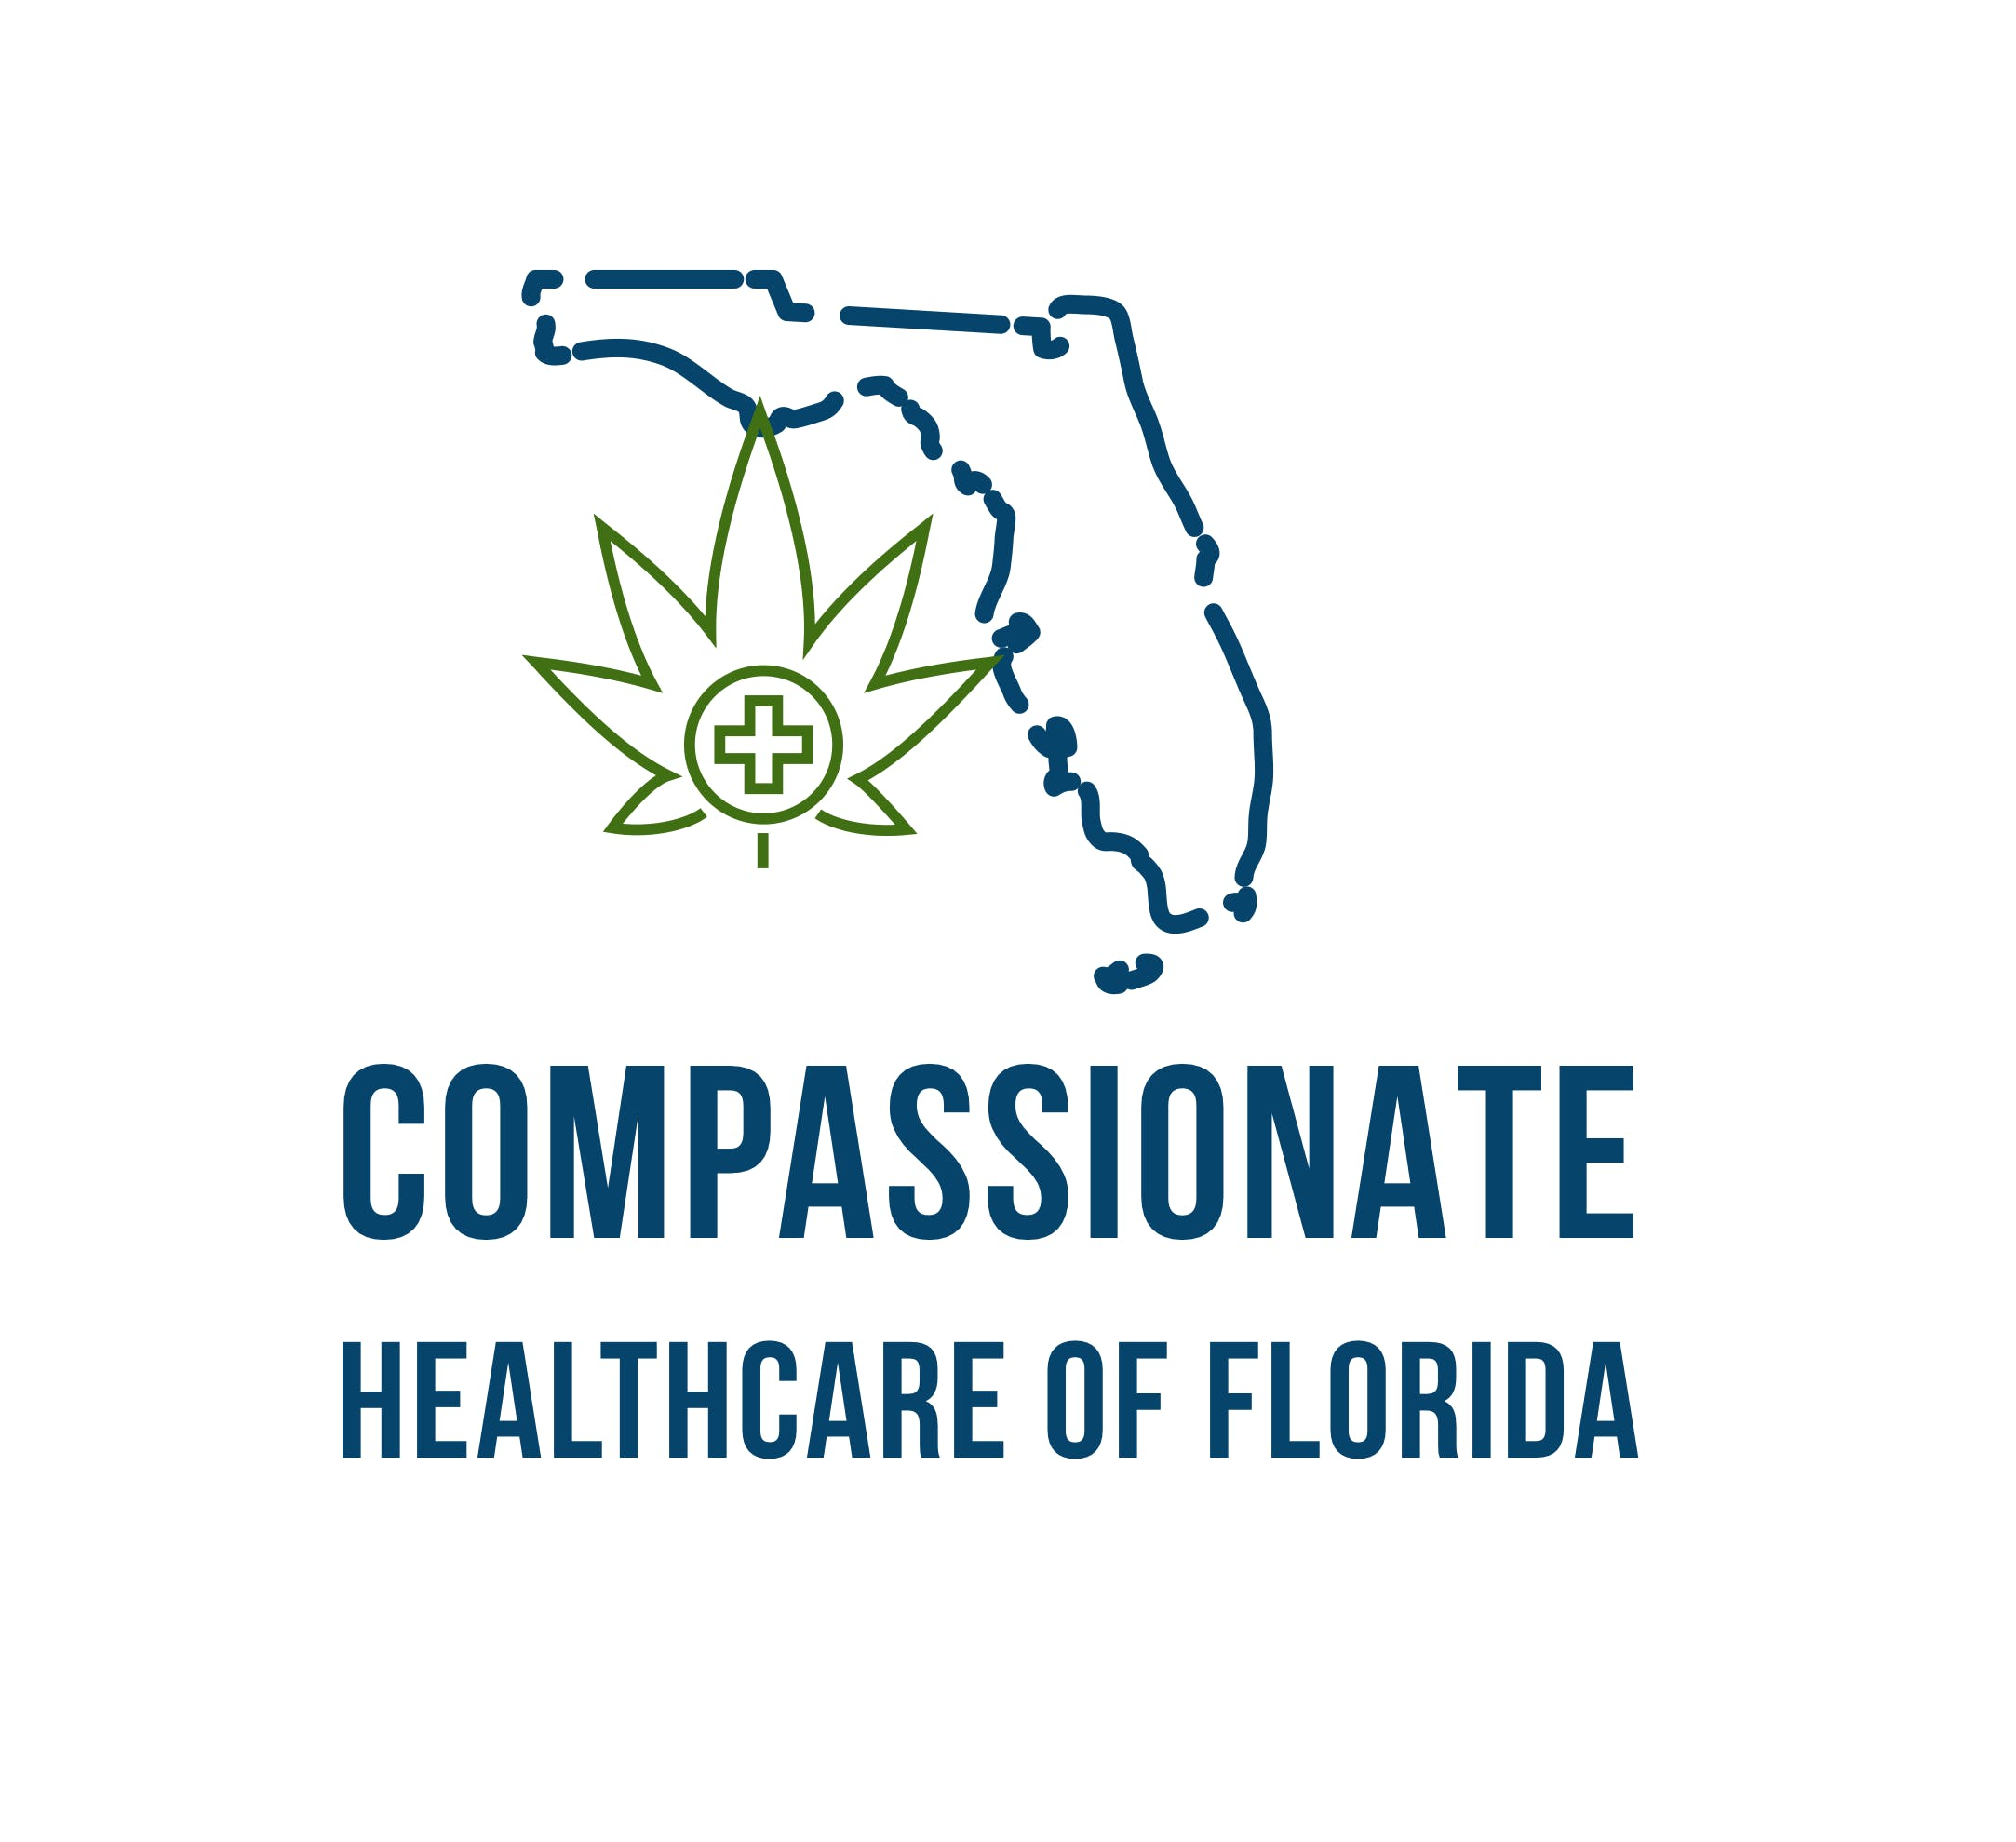 Compassionate Healthcare of Florida